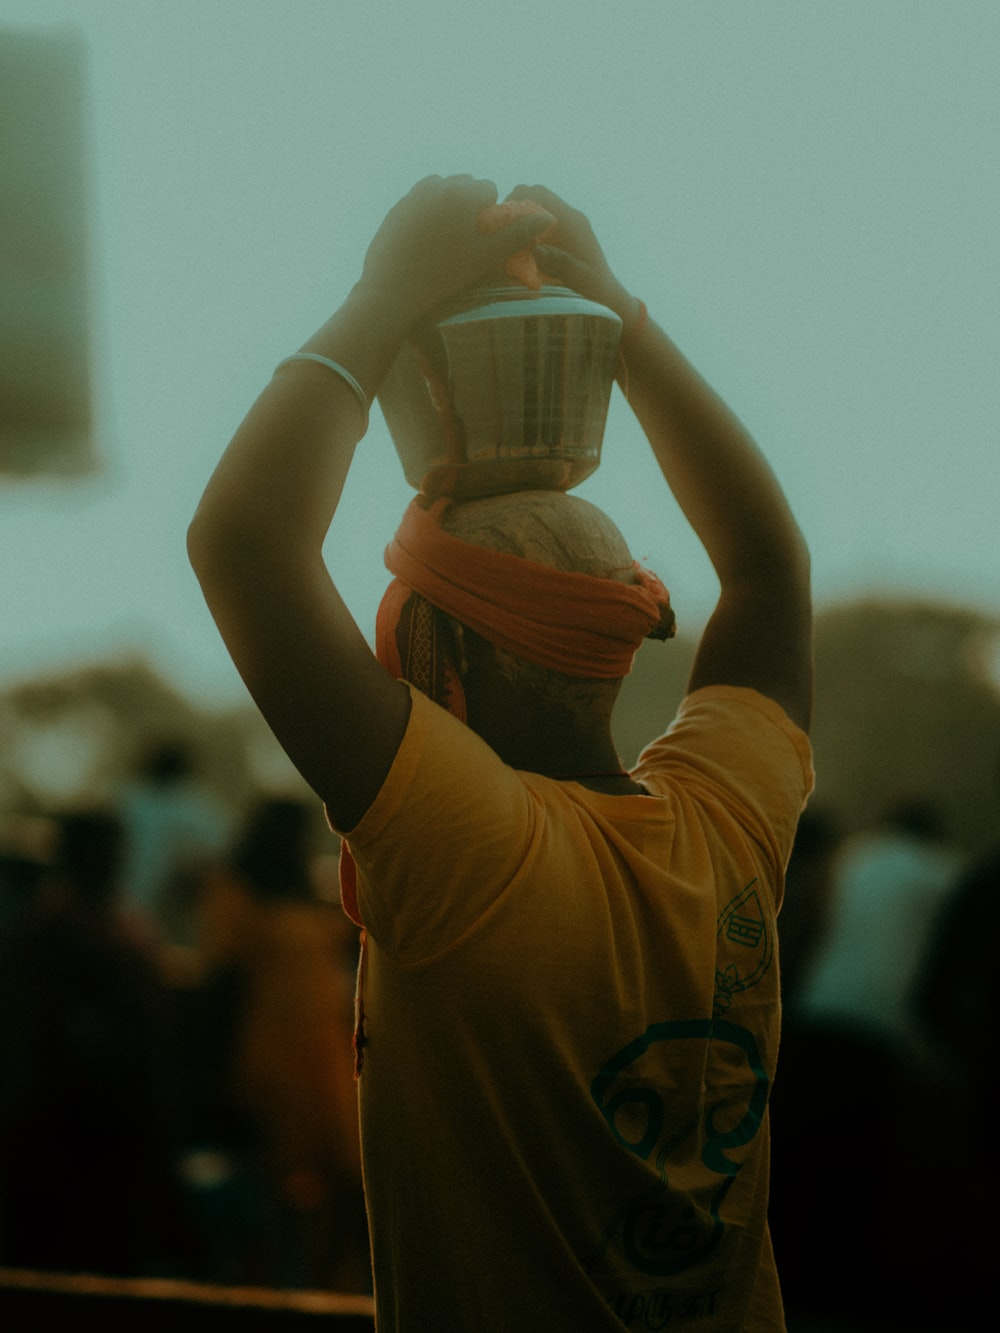 woman in yellow t-shirt holding white ceramic cup